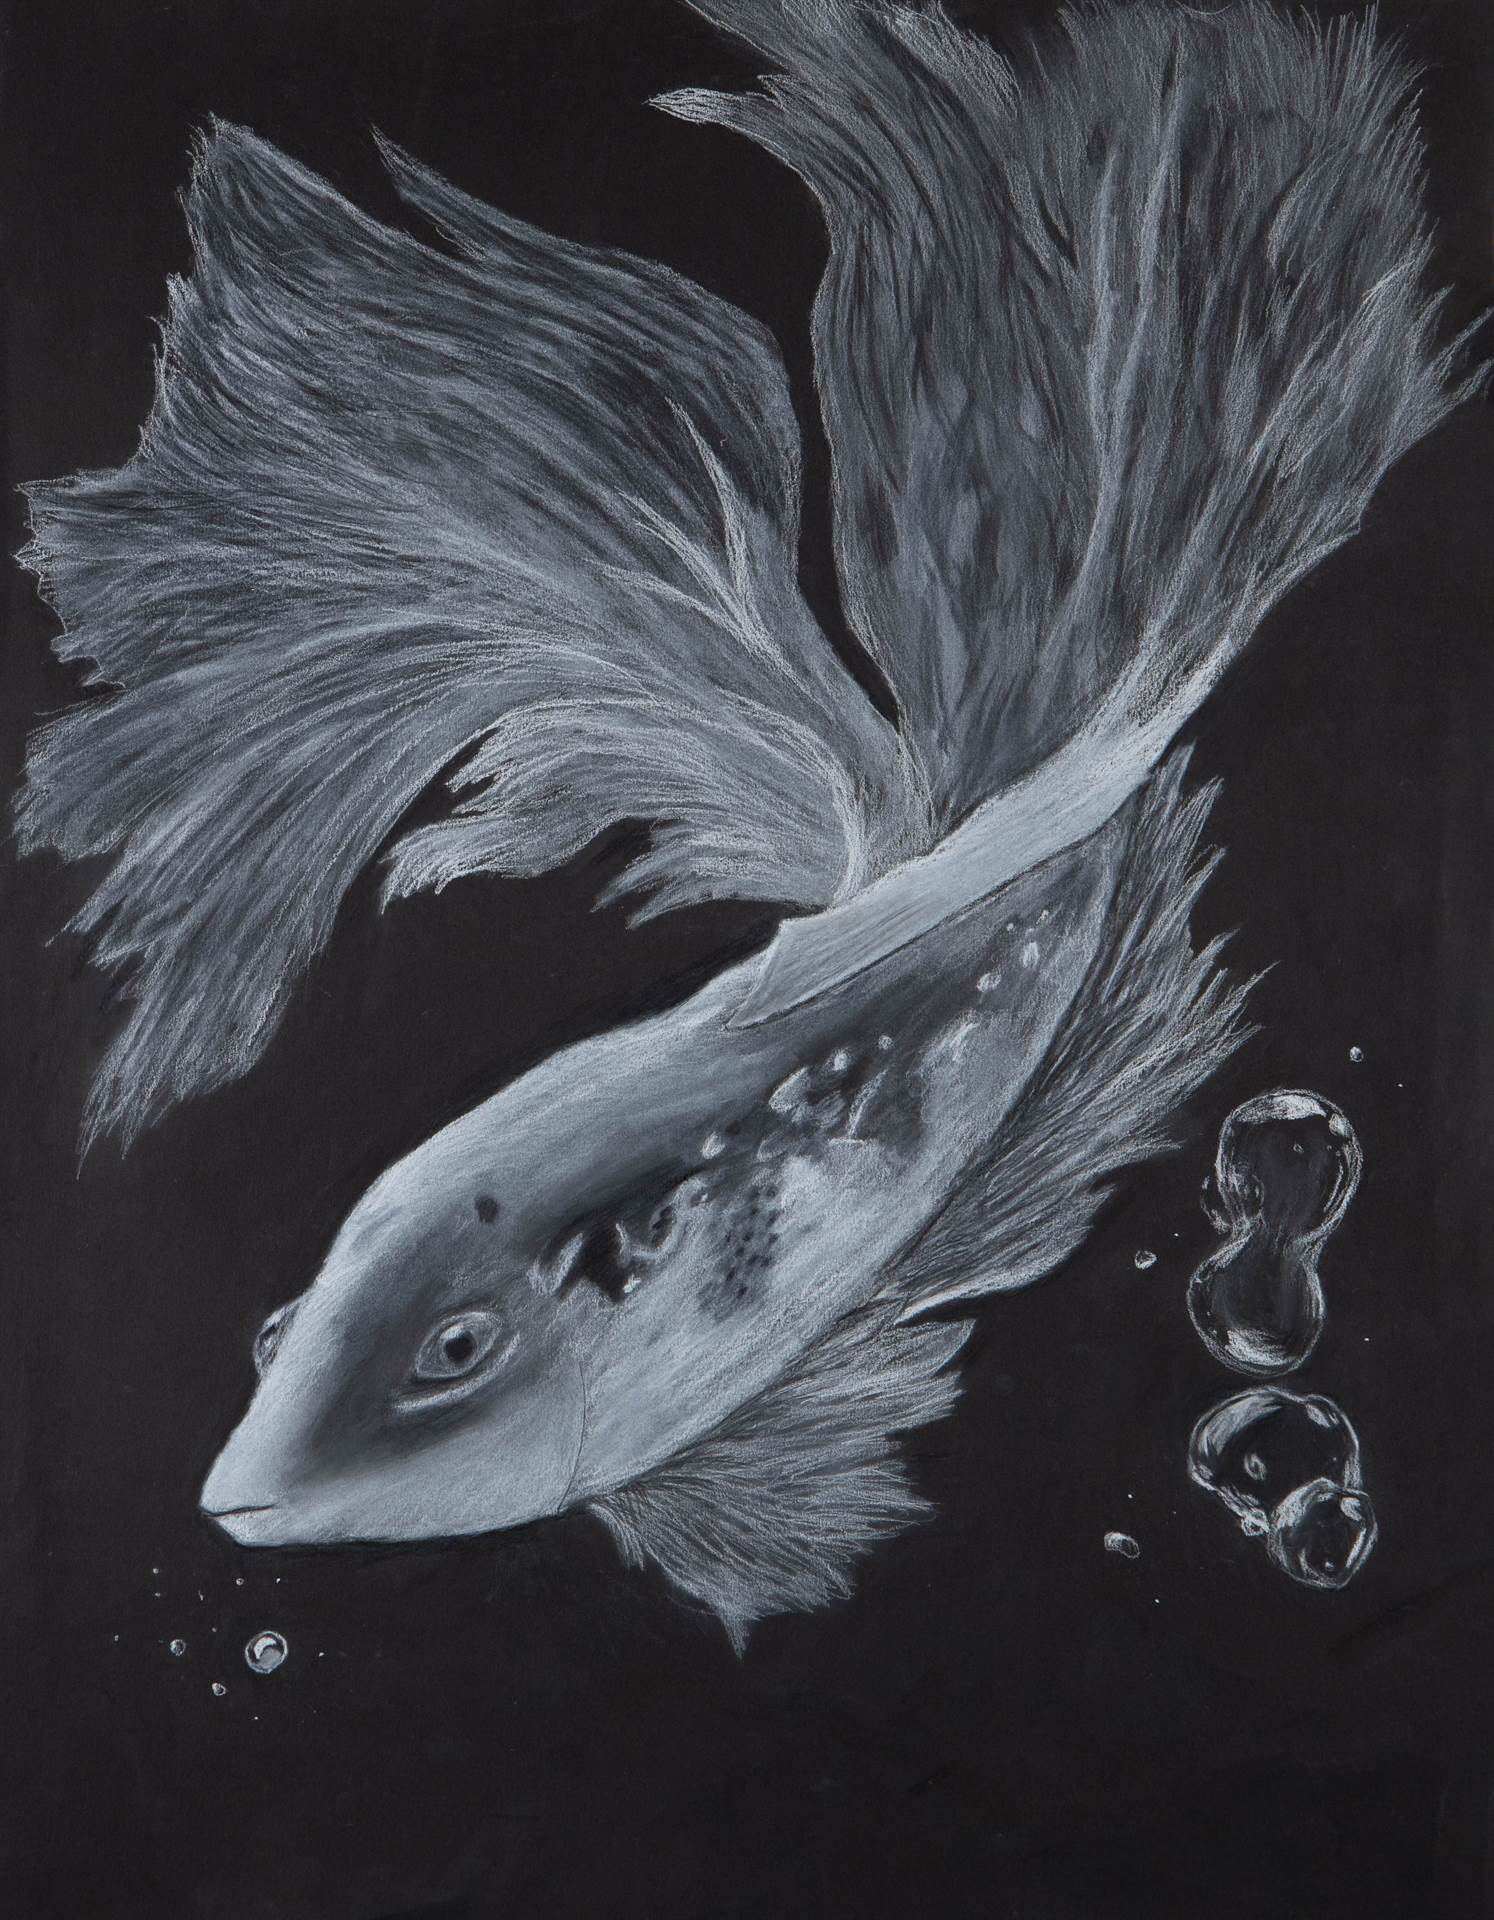 Drawing of koi fish